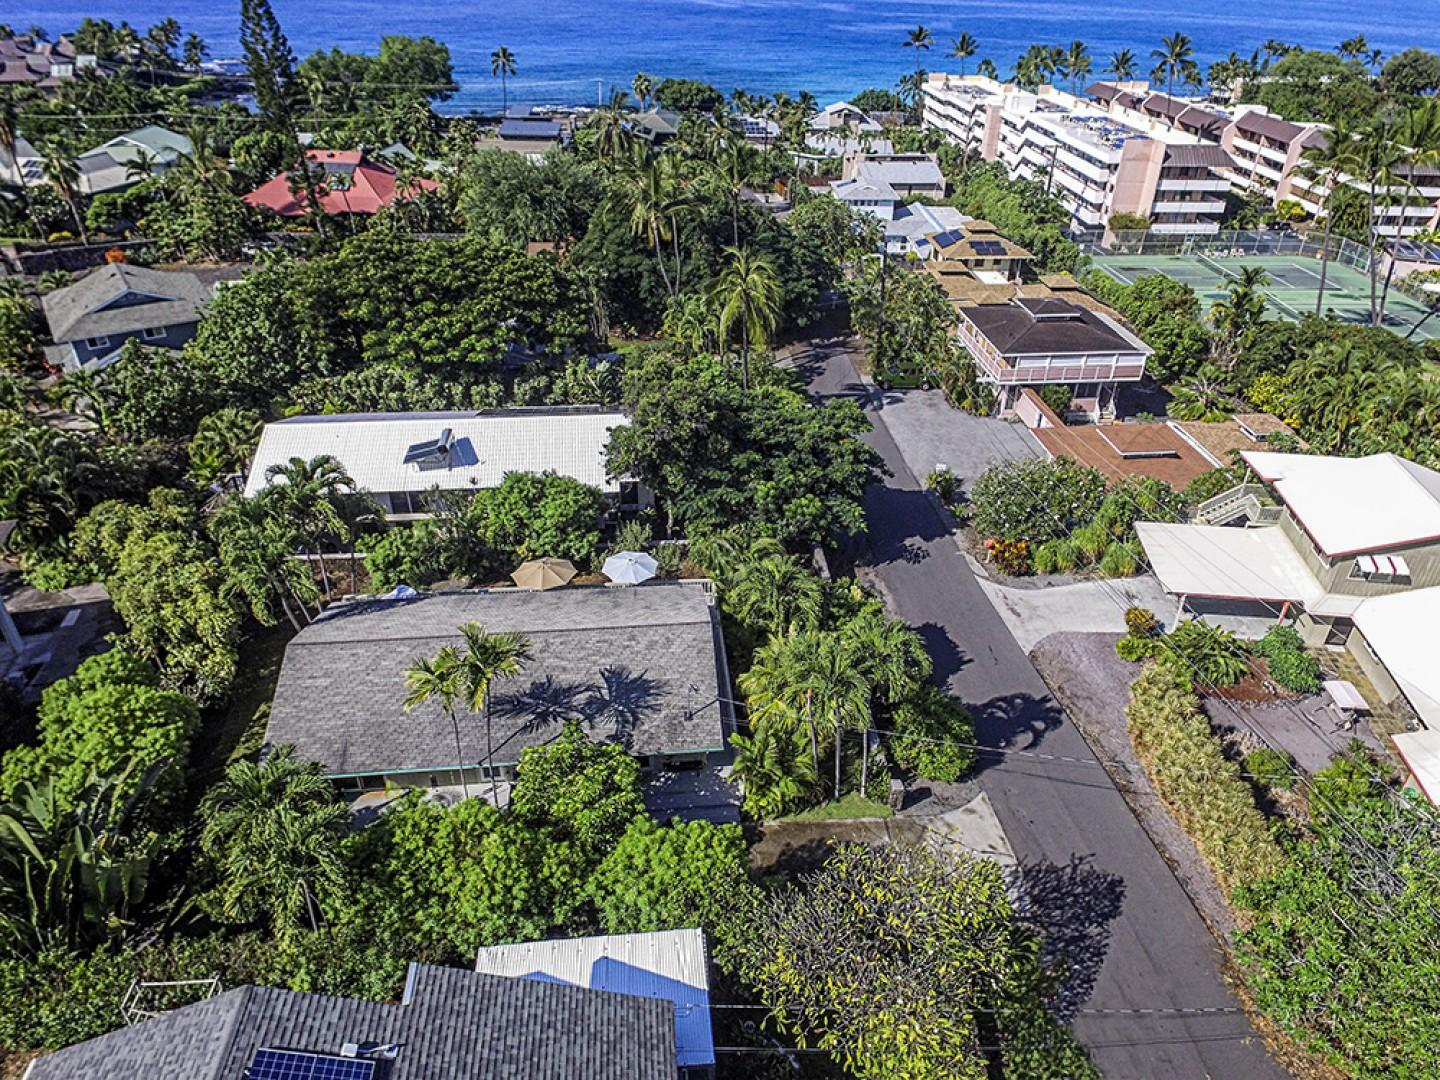 Aerial view of the home showing Magic Sands Beach